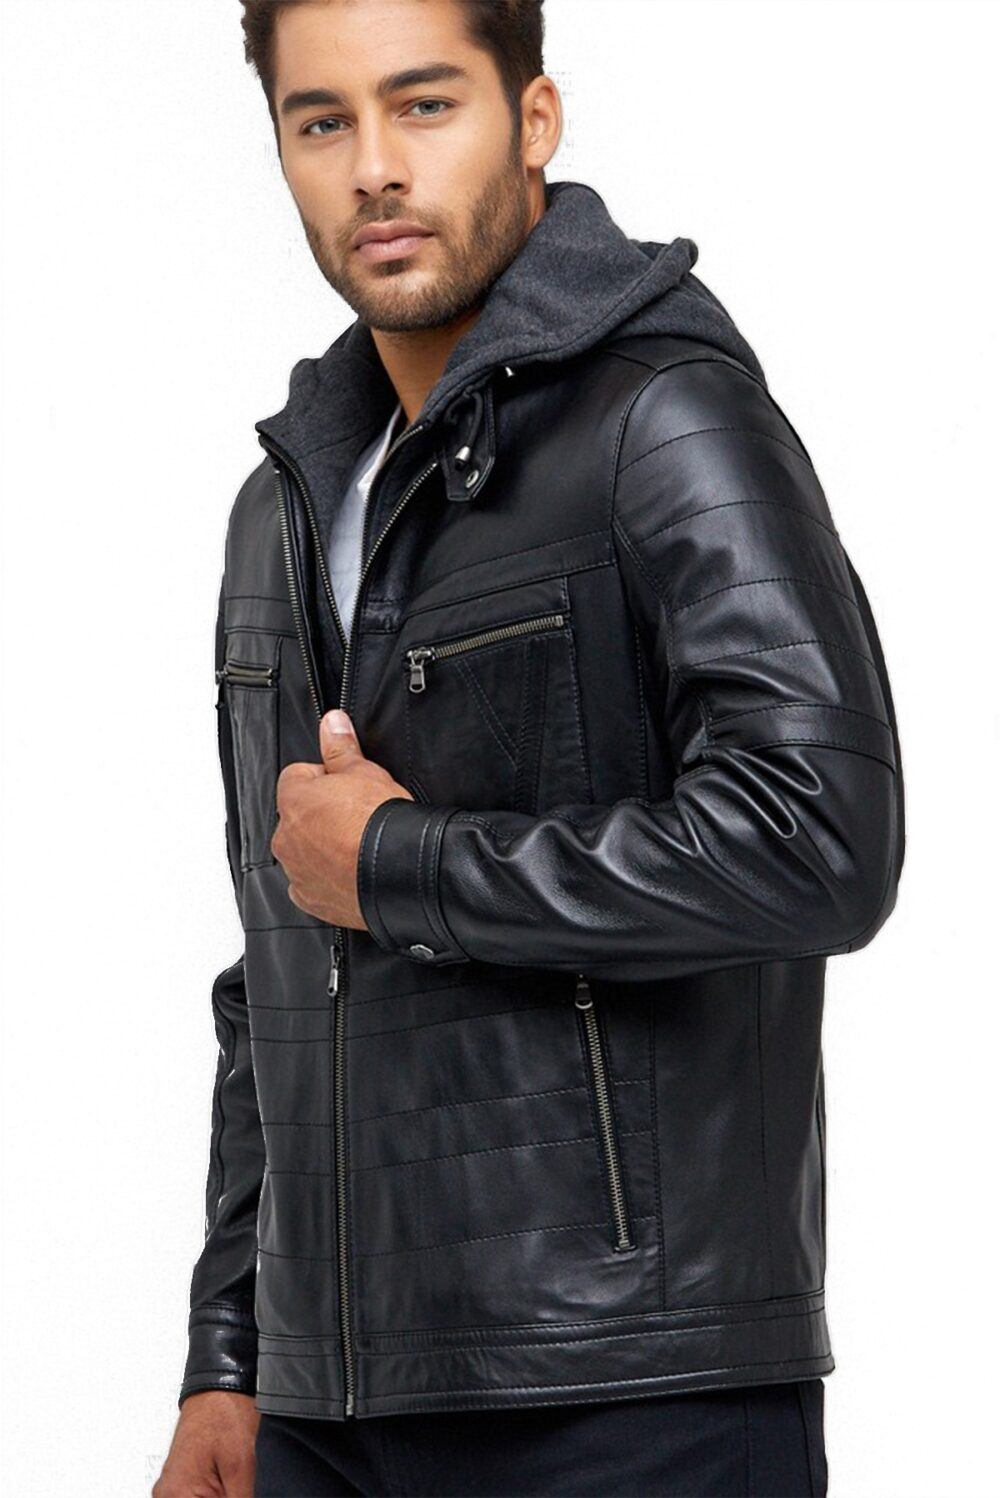 real leather jacket plus size